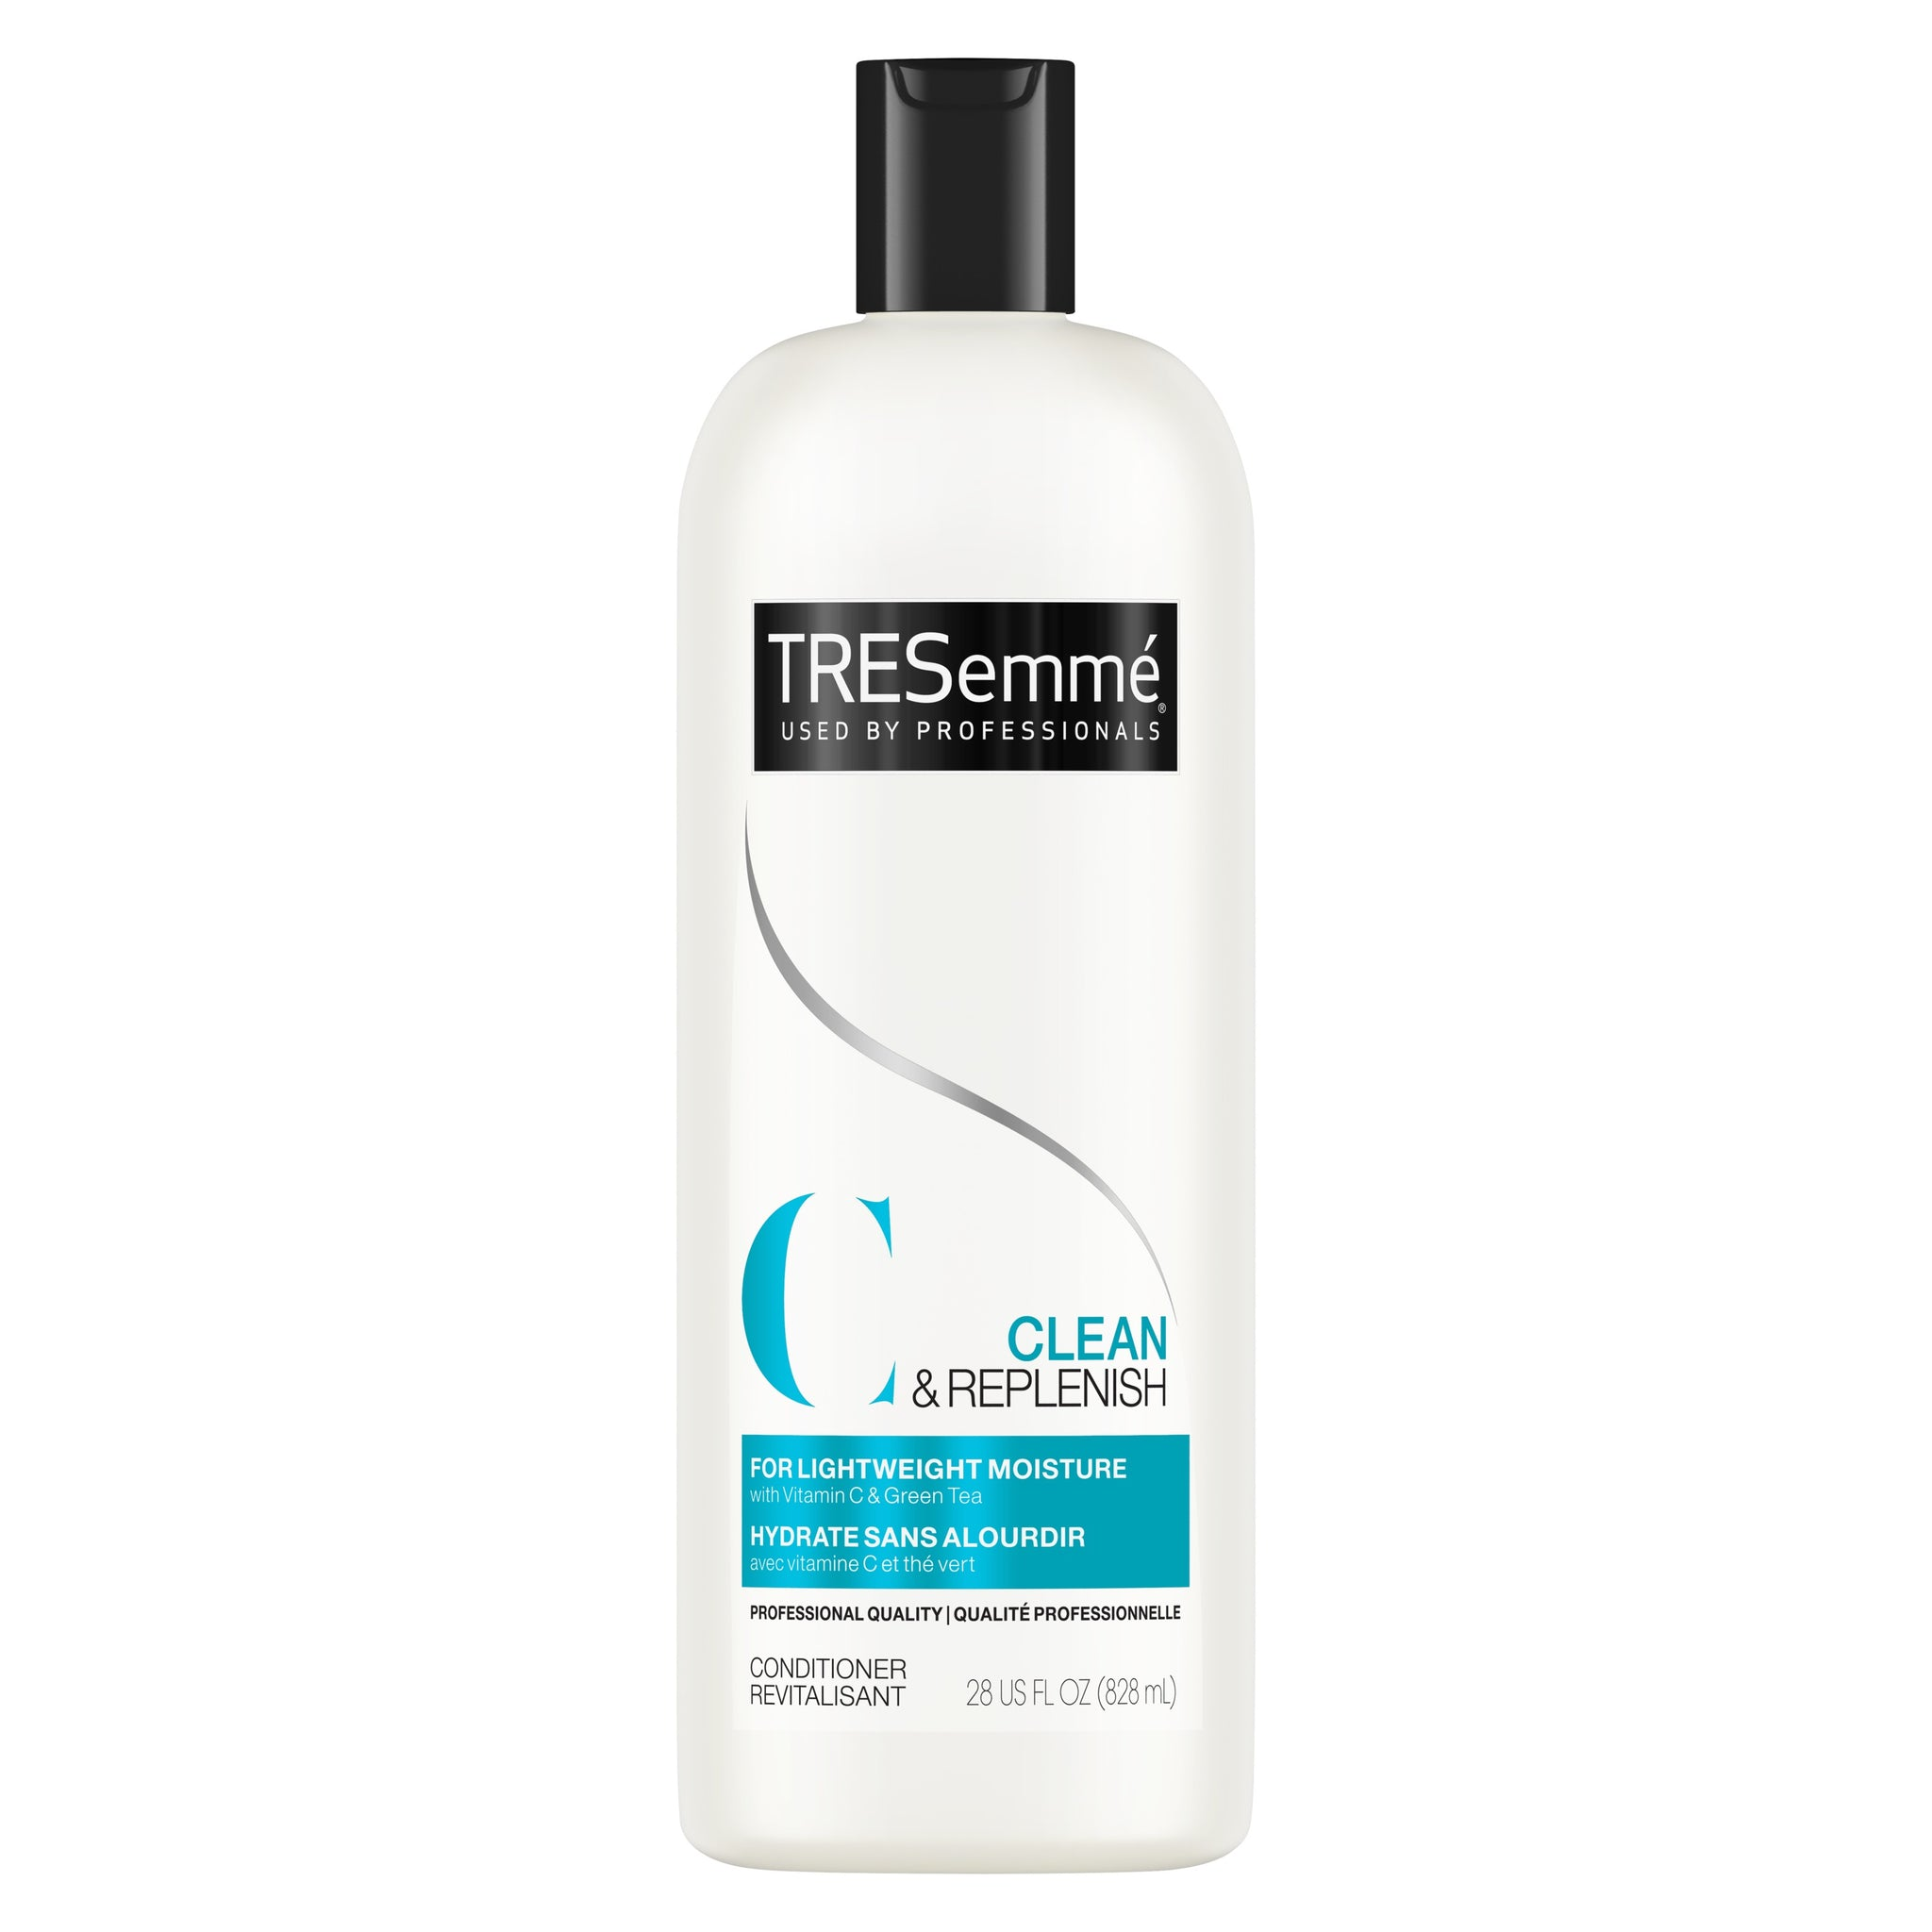 TRESemmé Clean & Replenish Conditioner 828mL